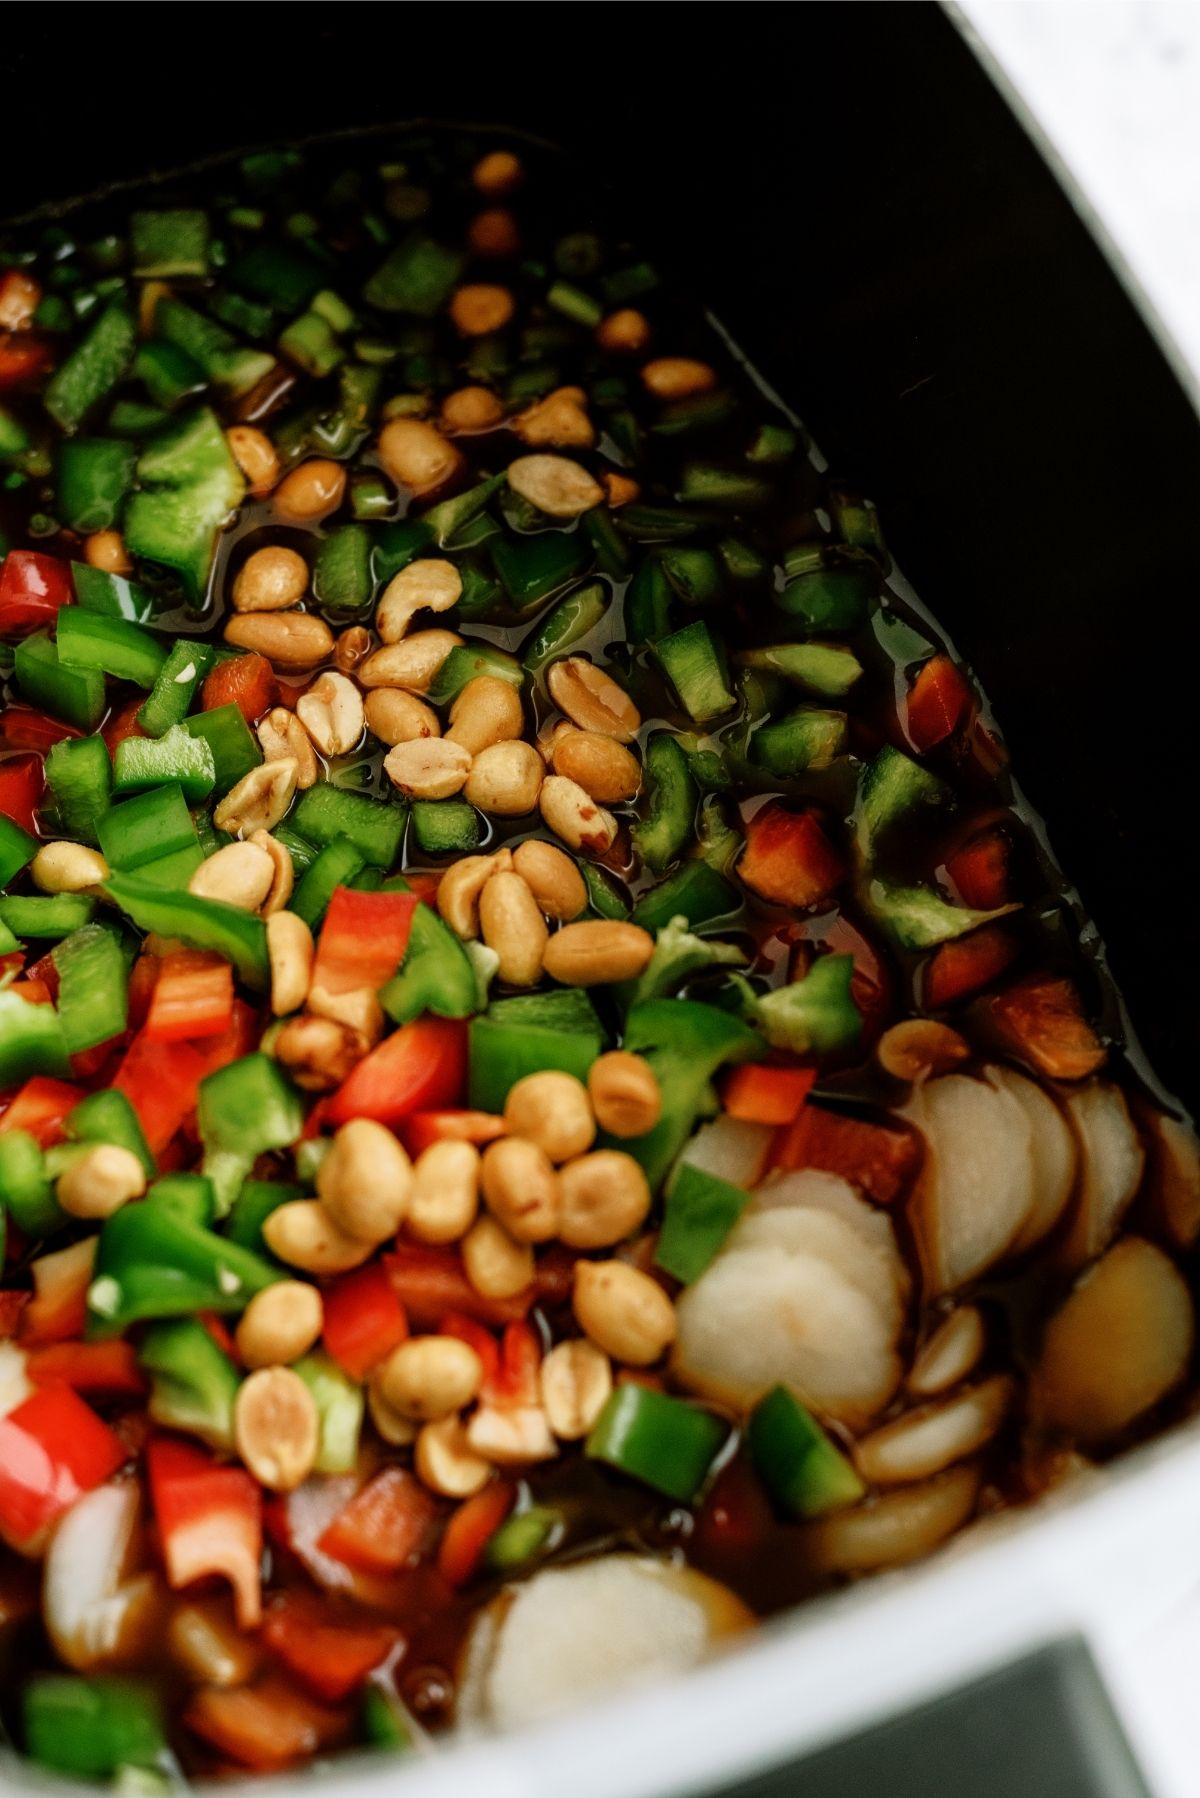 All ingredients for Slow Cooker Kung Pao Chicken inside the Slow Cooker